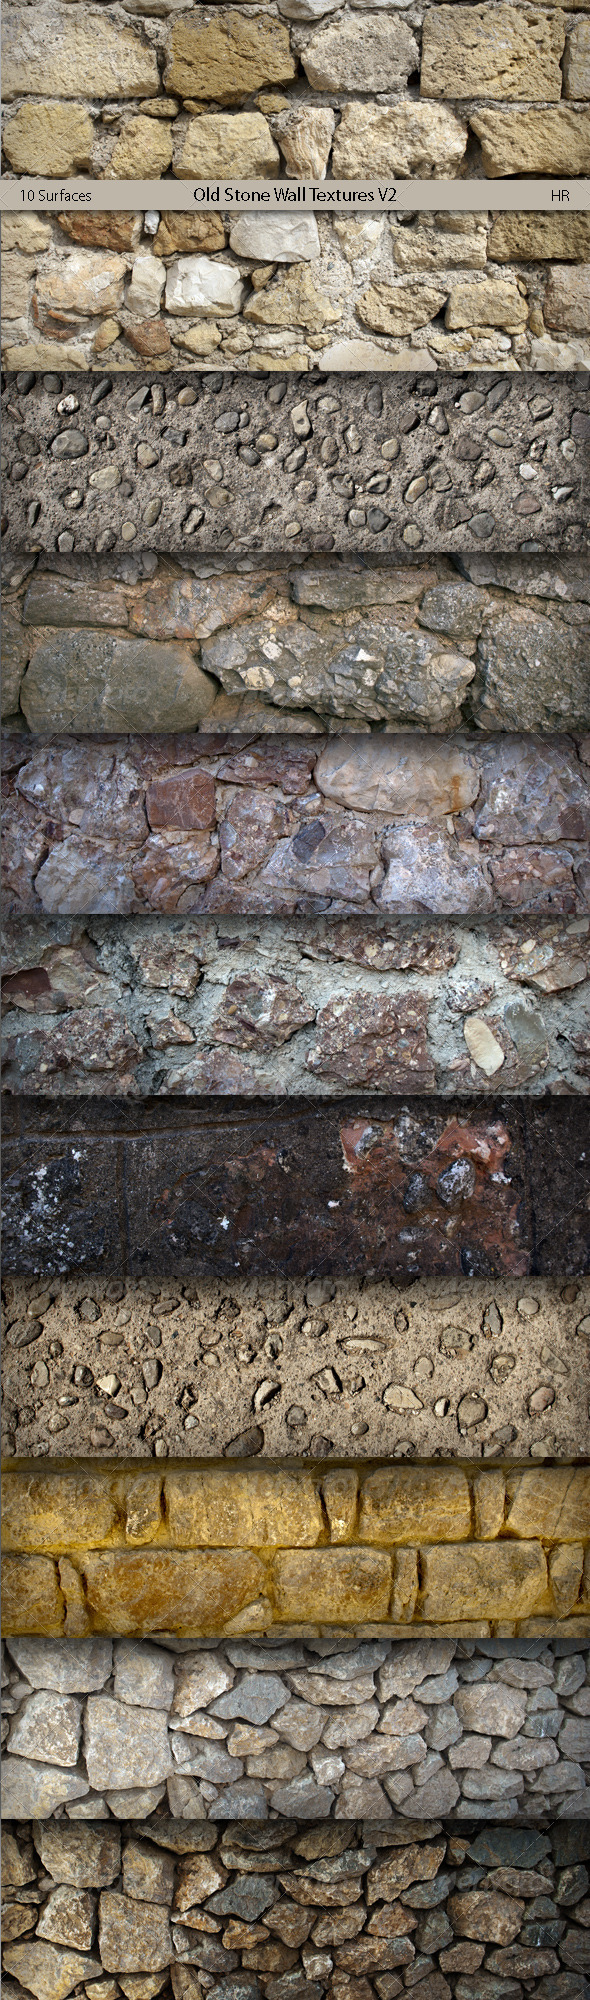 Old Stone Wall Surfaces Texture Backgrounds V2 By